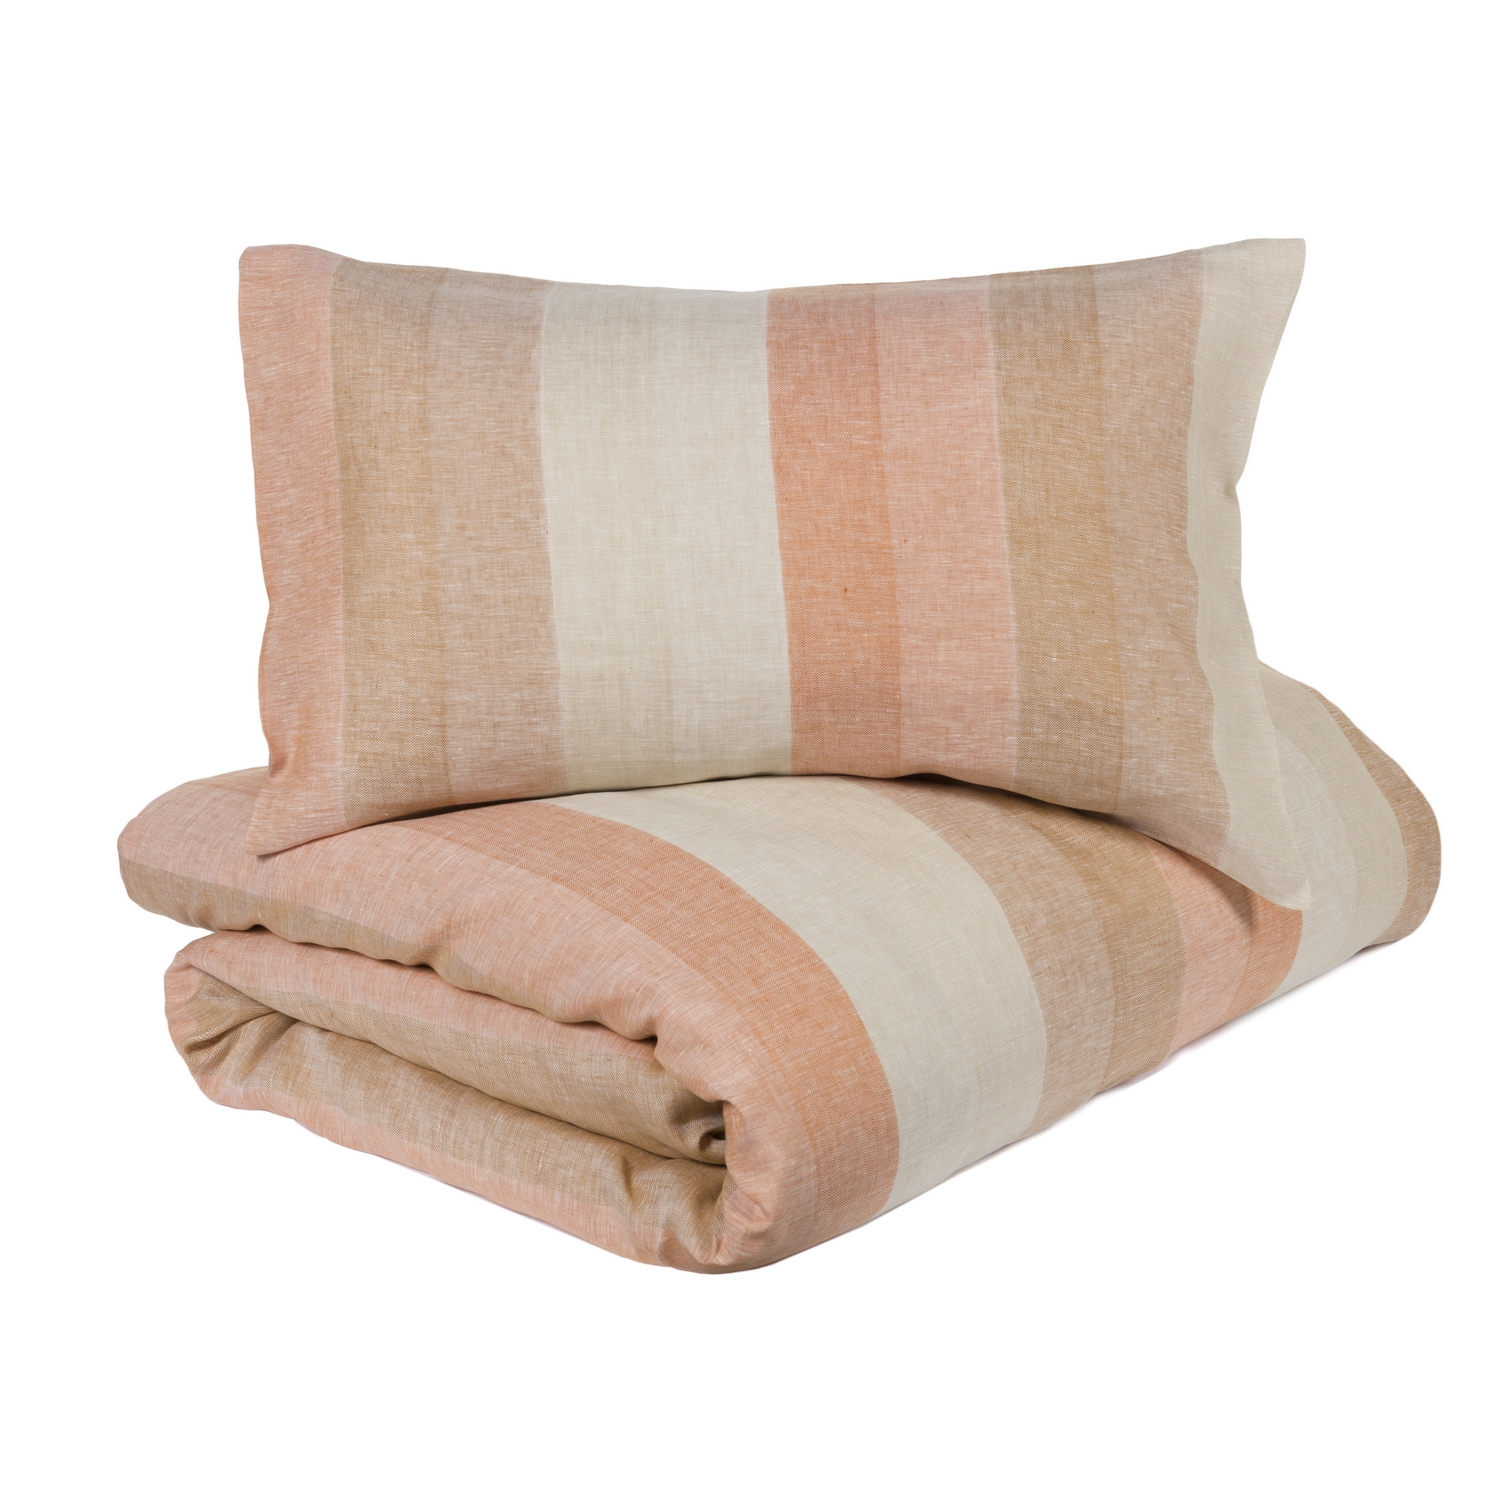 Duvet cover set VERNISSAGE - double - red pink